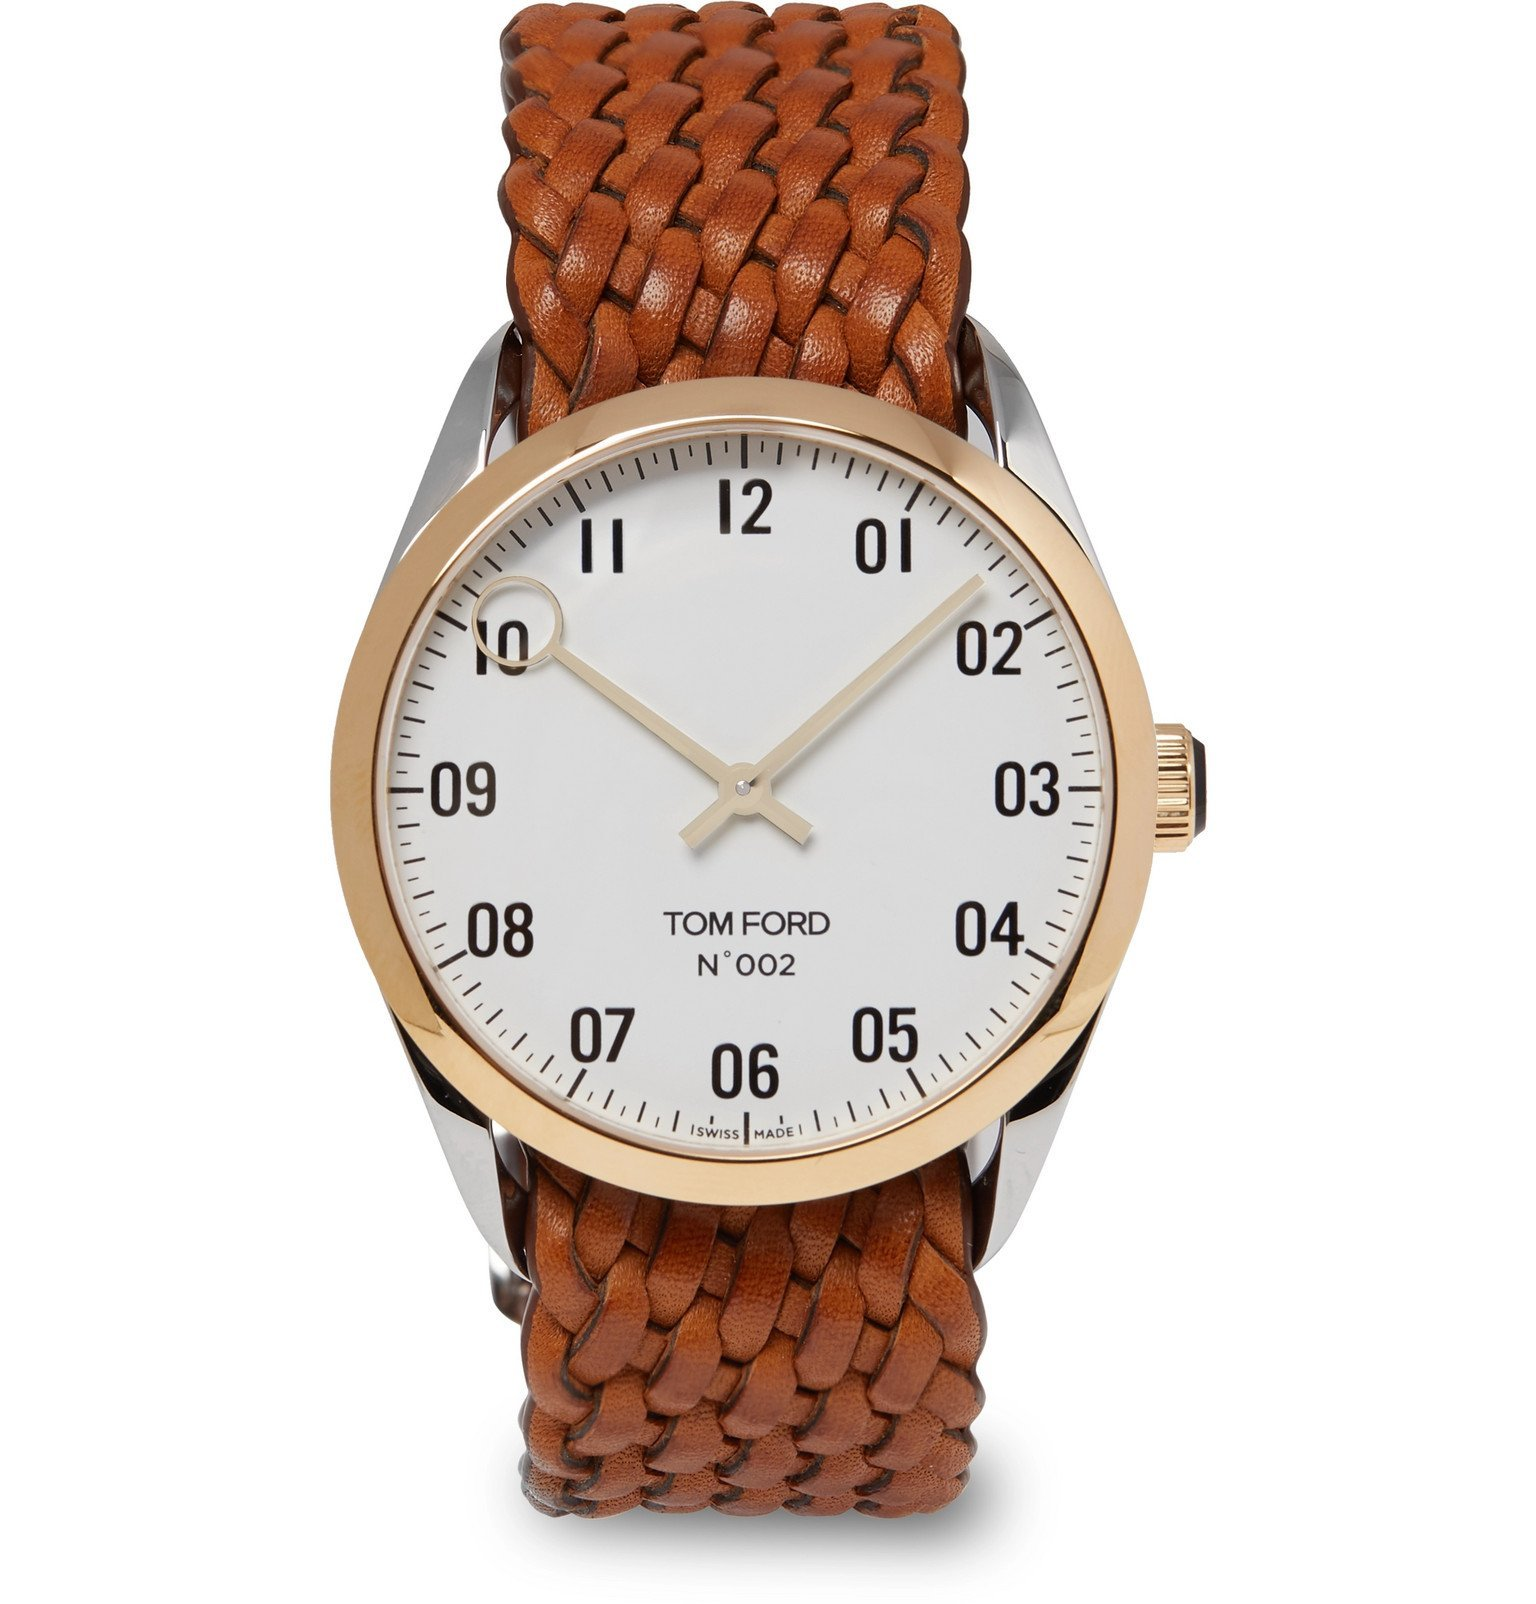 Tom Ford Timepieces - 002 38mm Stainless Steel, 18-Karat Gold and Leather Watch - White